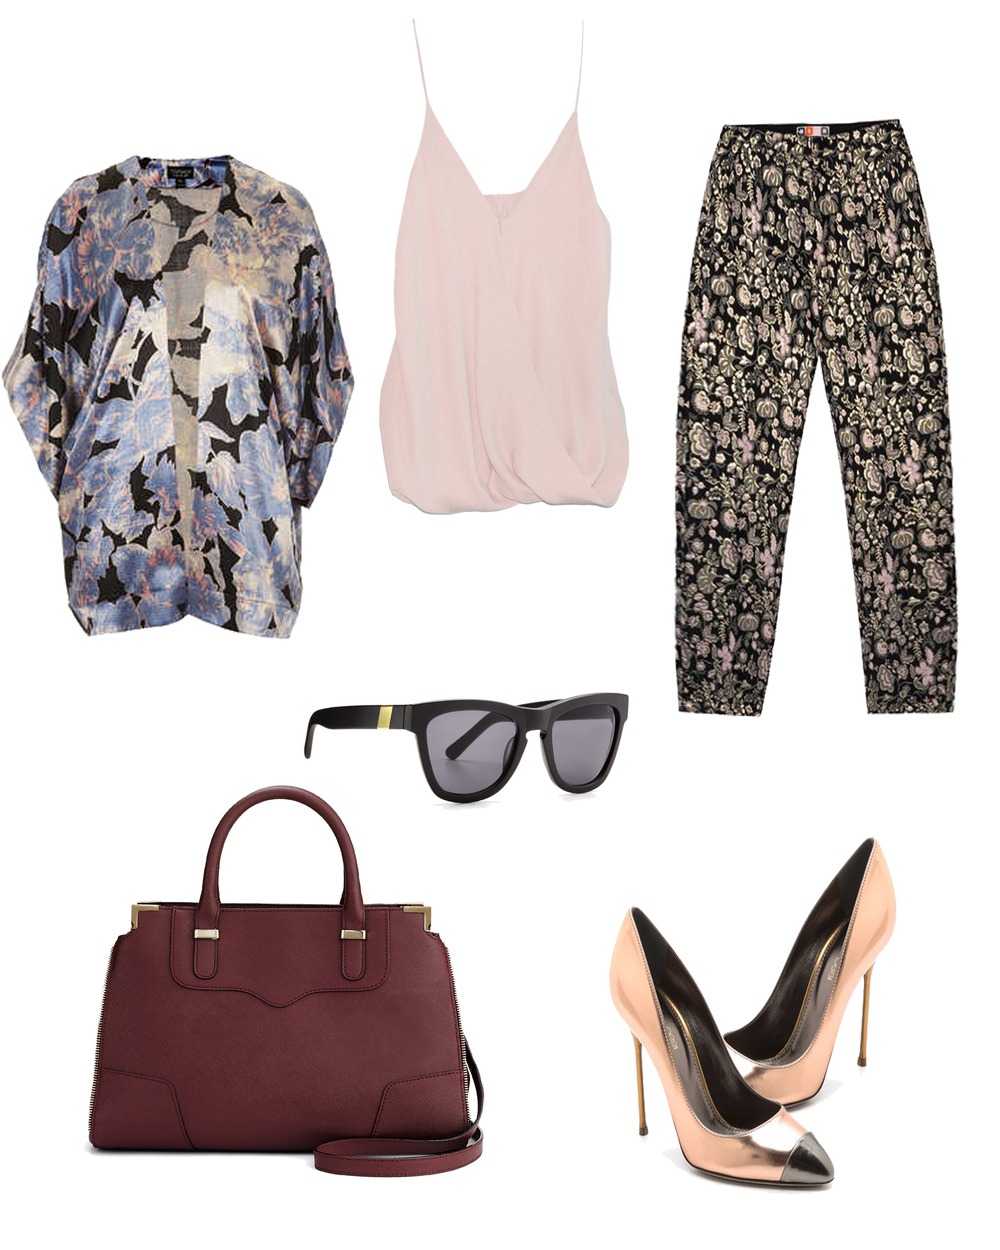 Sergio Rossi pumps  Chelsea Flower tank  Top Shop kimono Rebecca Minkoff Bag Sunglasses from Otte NYC